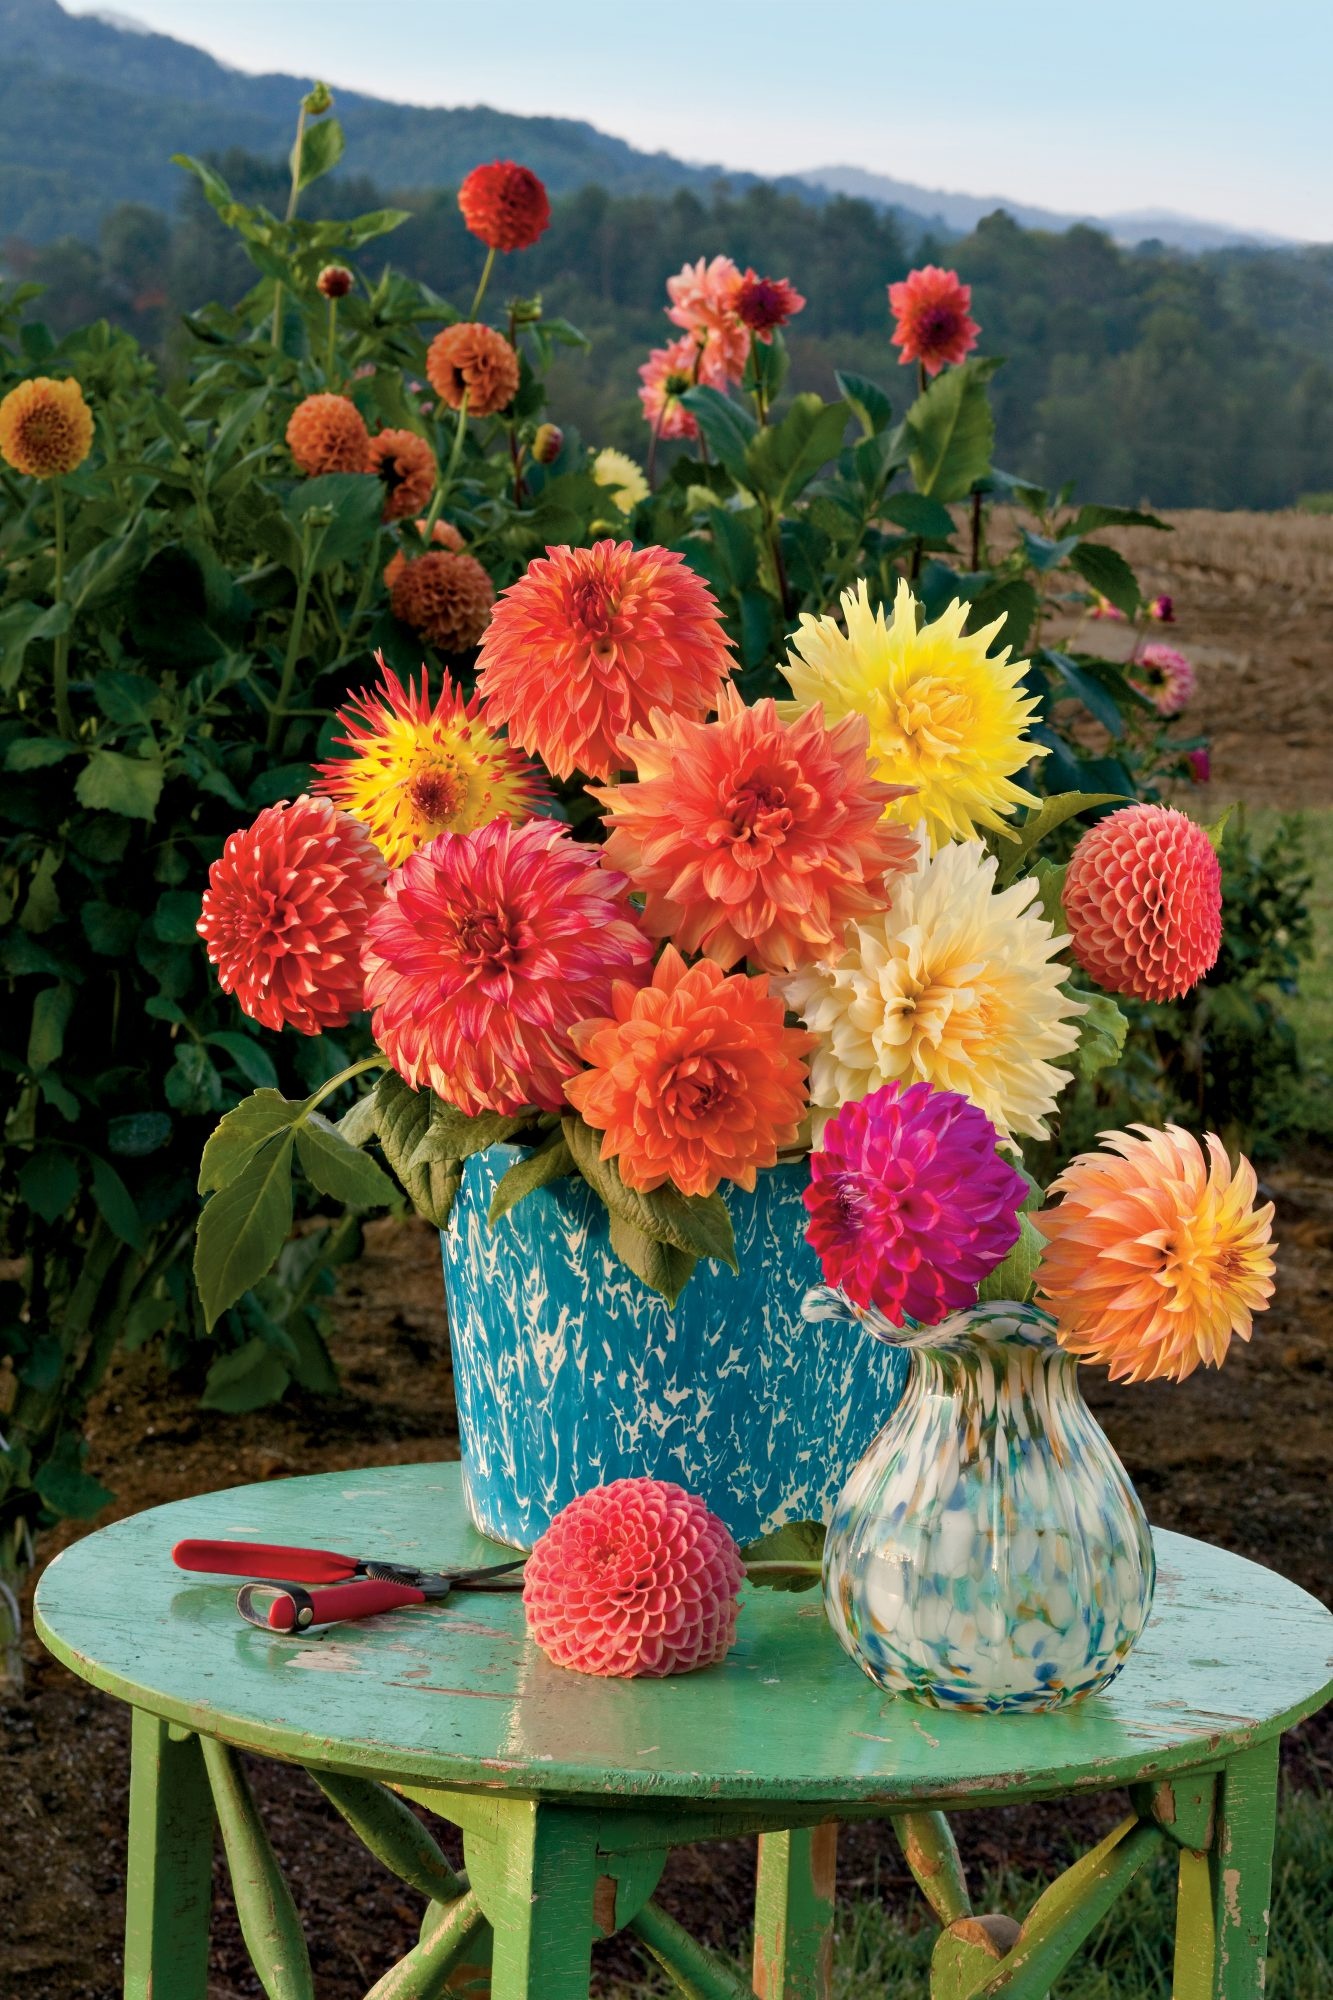 Pics Of Flower Arrangements dazzling dahlia flower arrangements - southern living